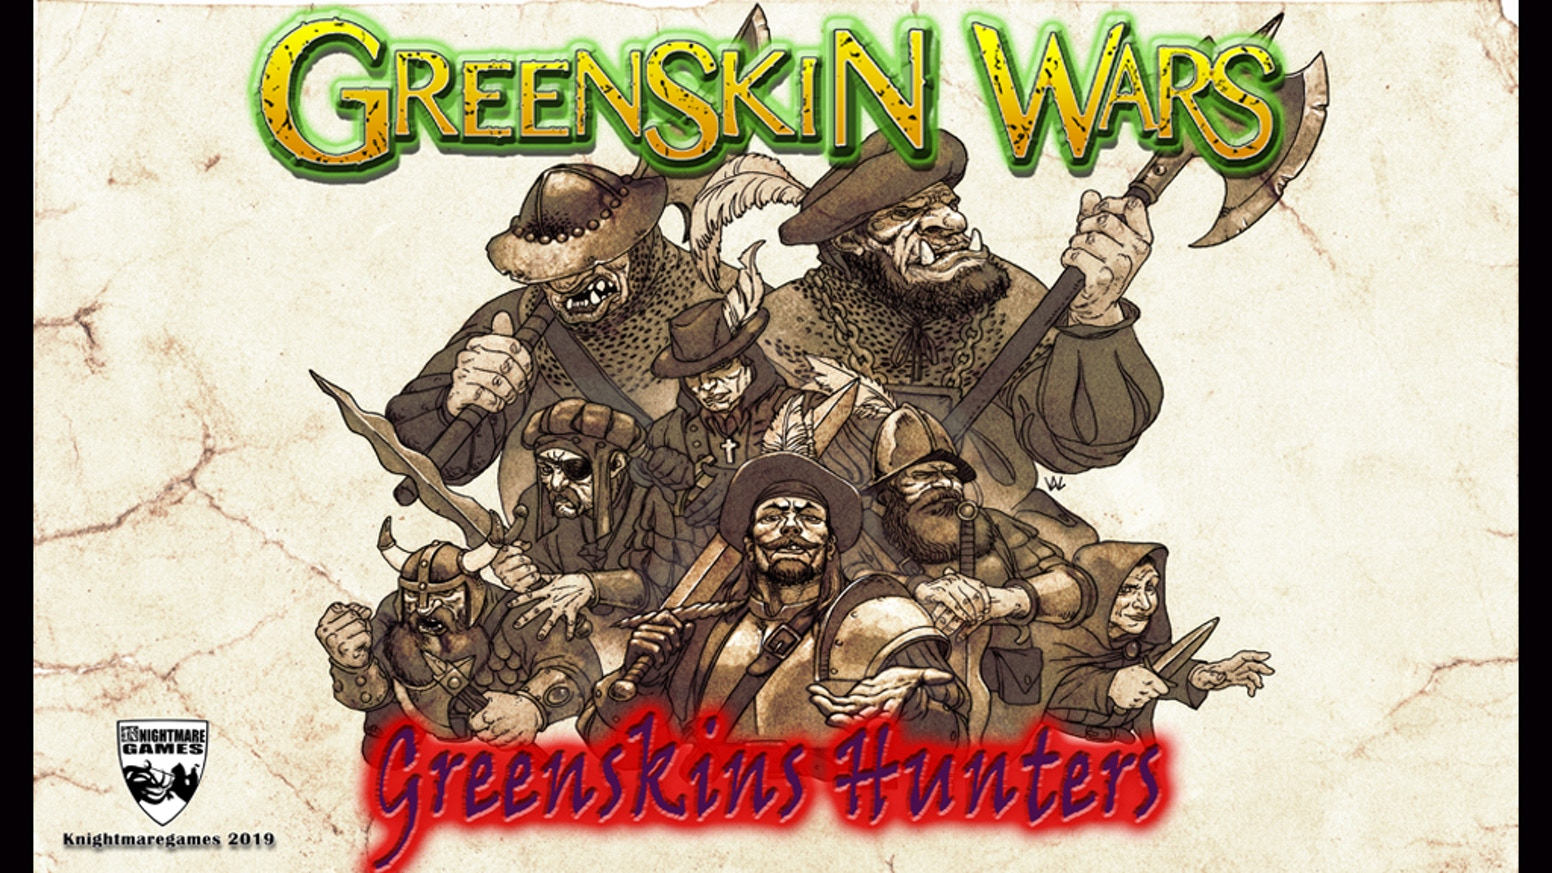 New metal miniatures for the successful range of Greenskin Wars.